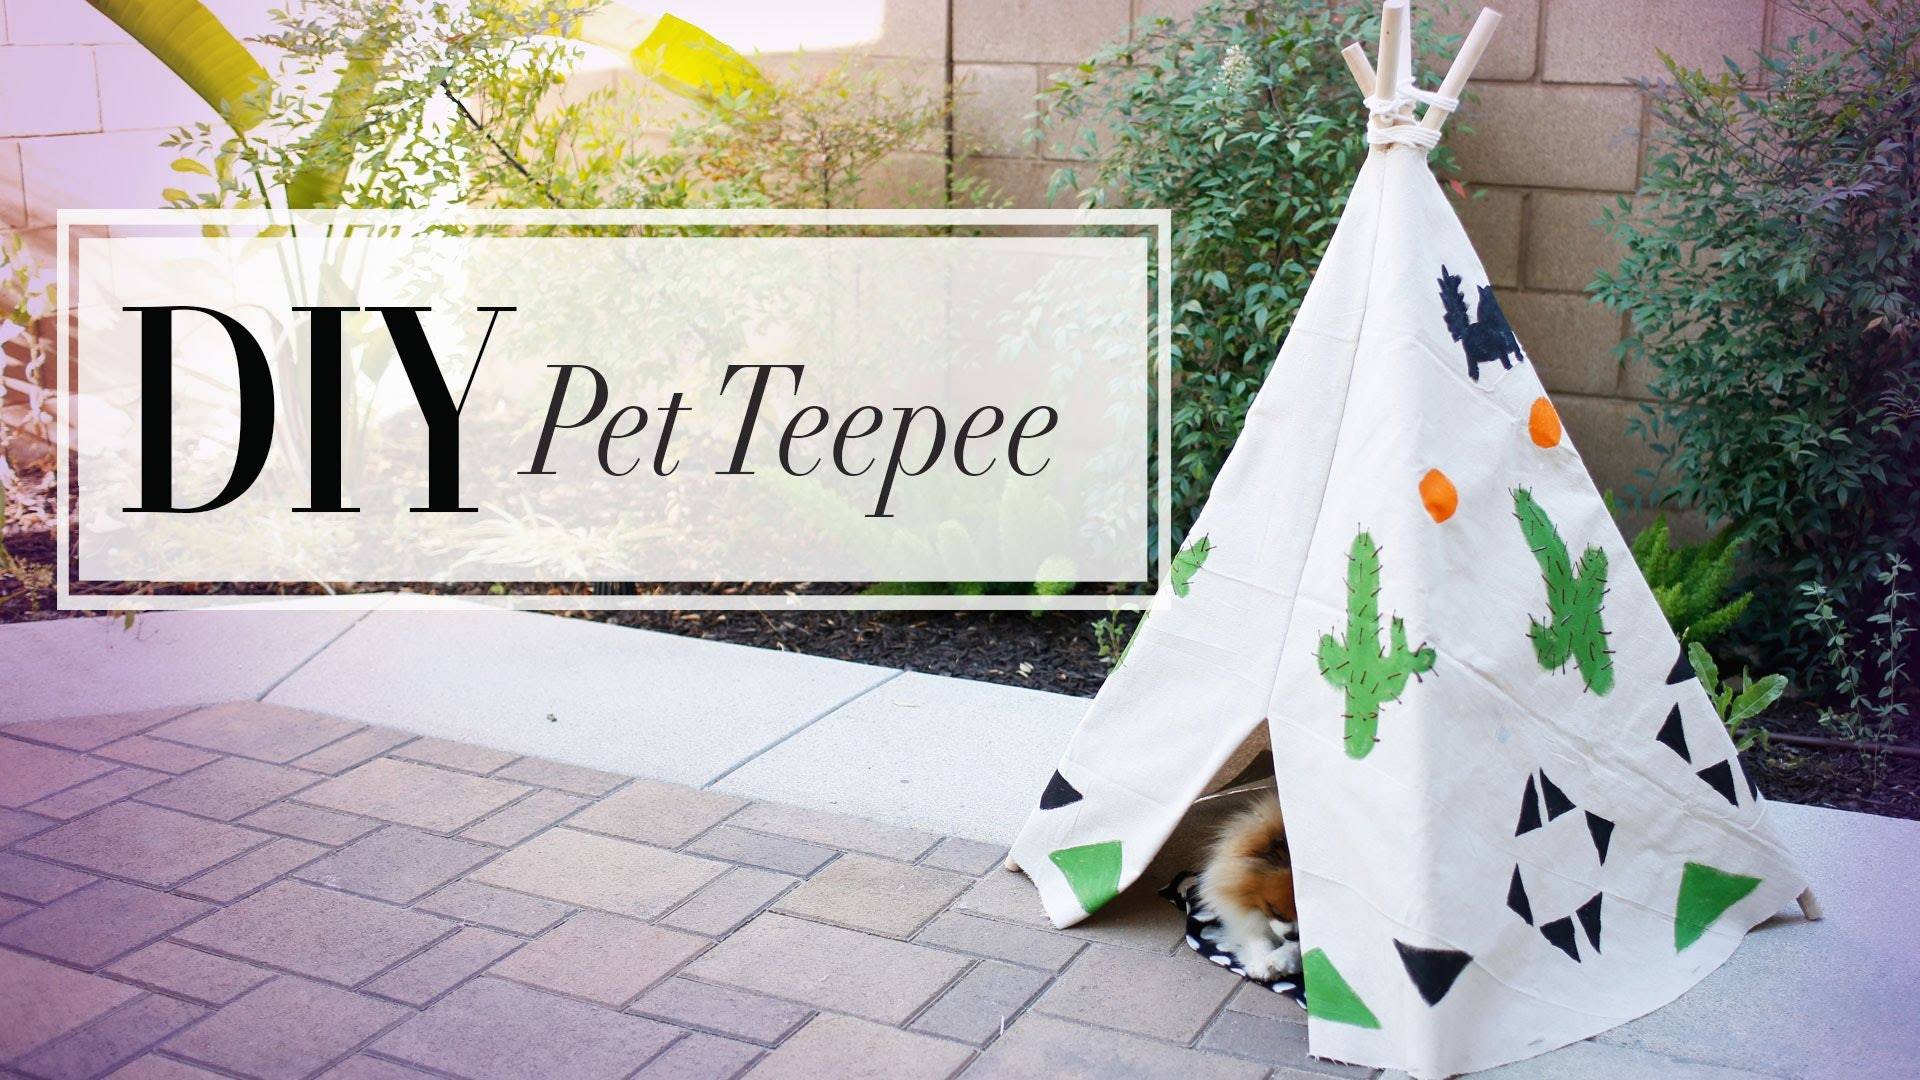 Related: Bring A Little Bit Of Whimsy Into Your Pup's Life With This DIY Dog Teepee